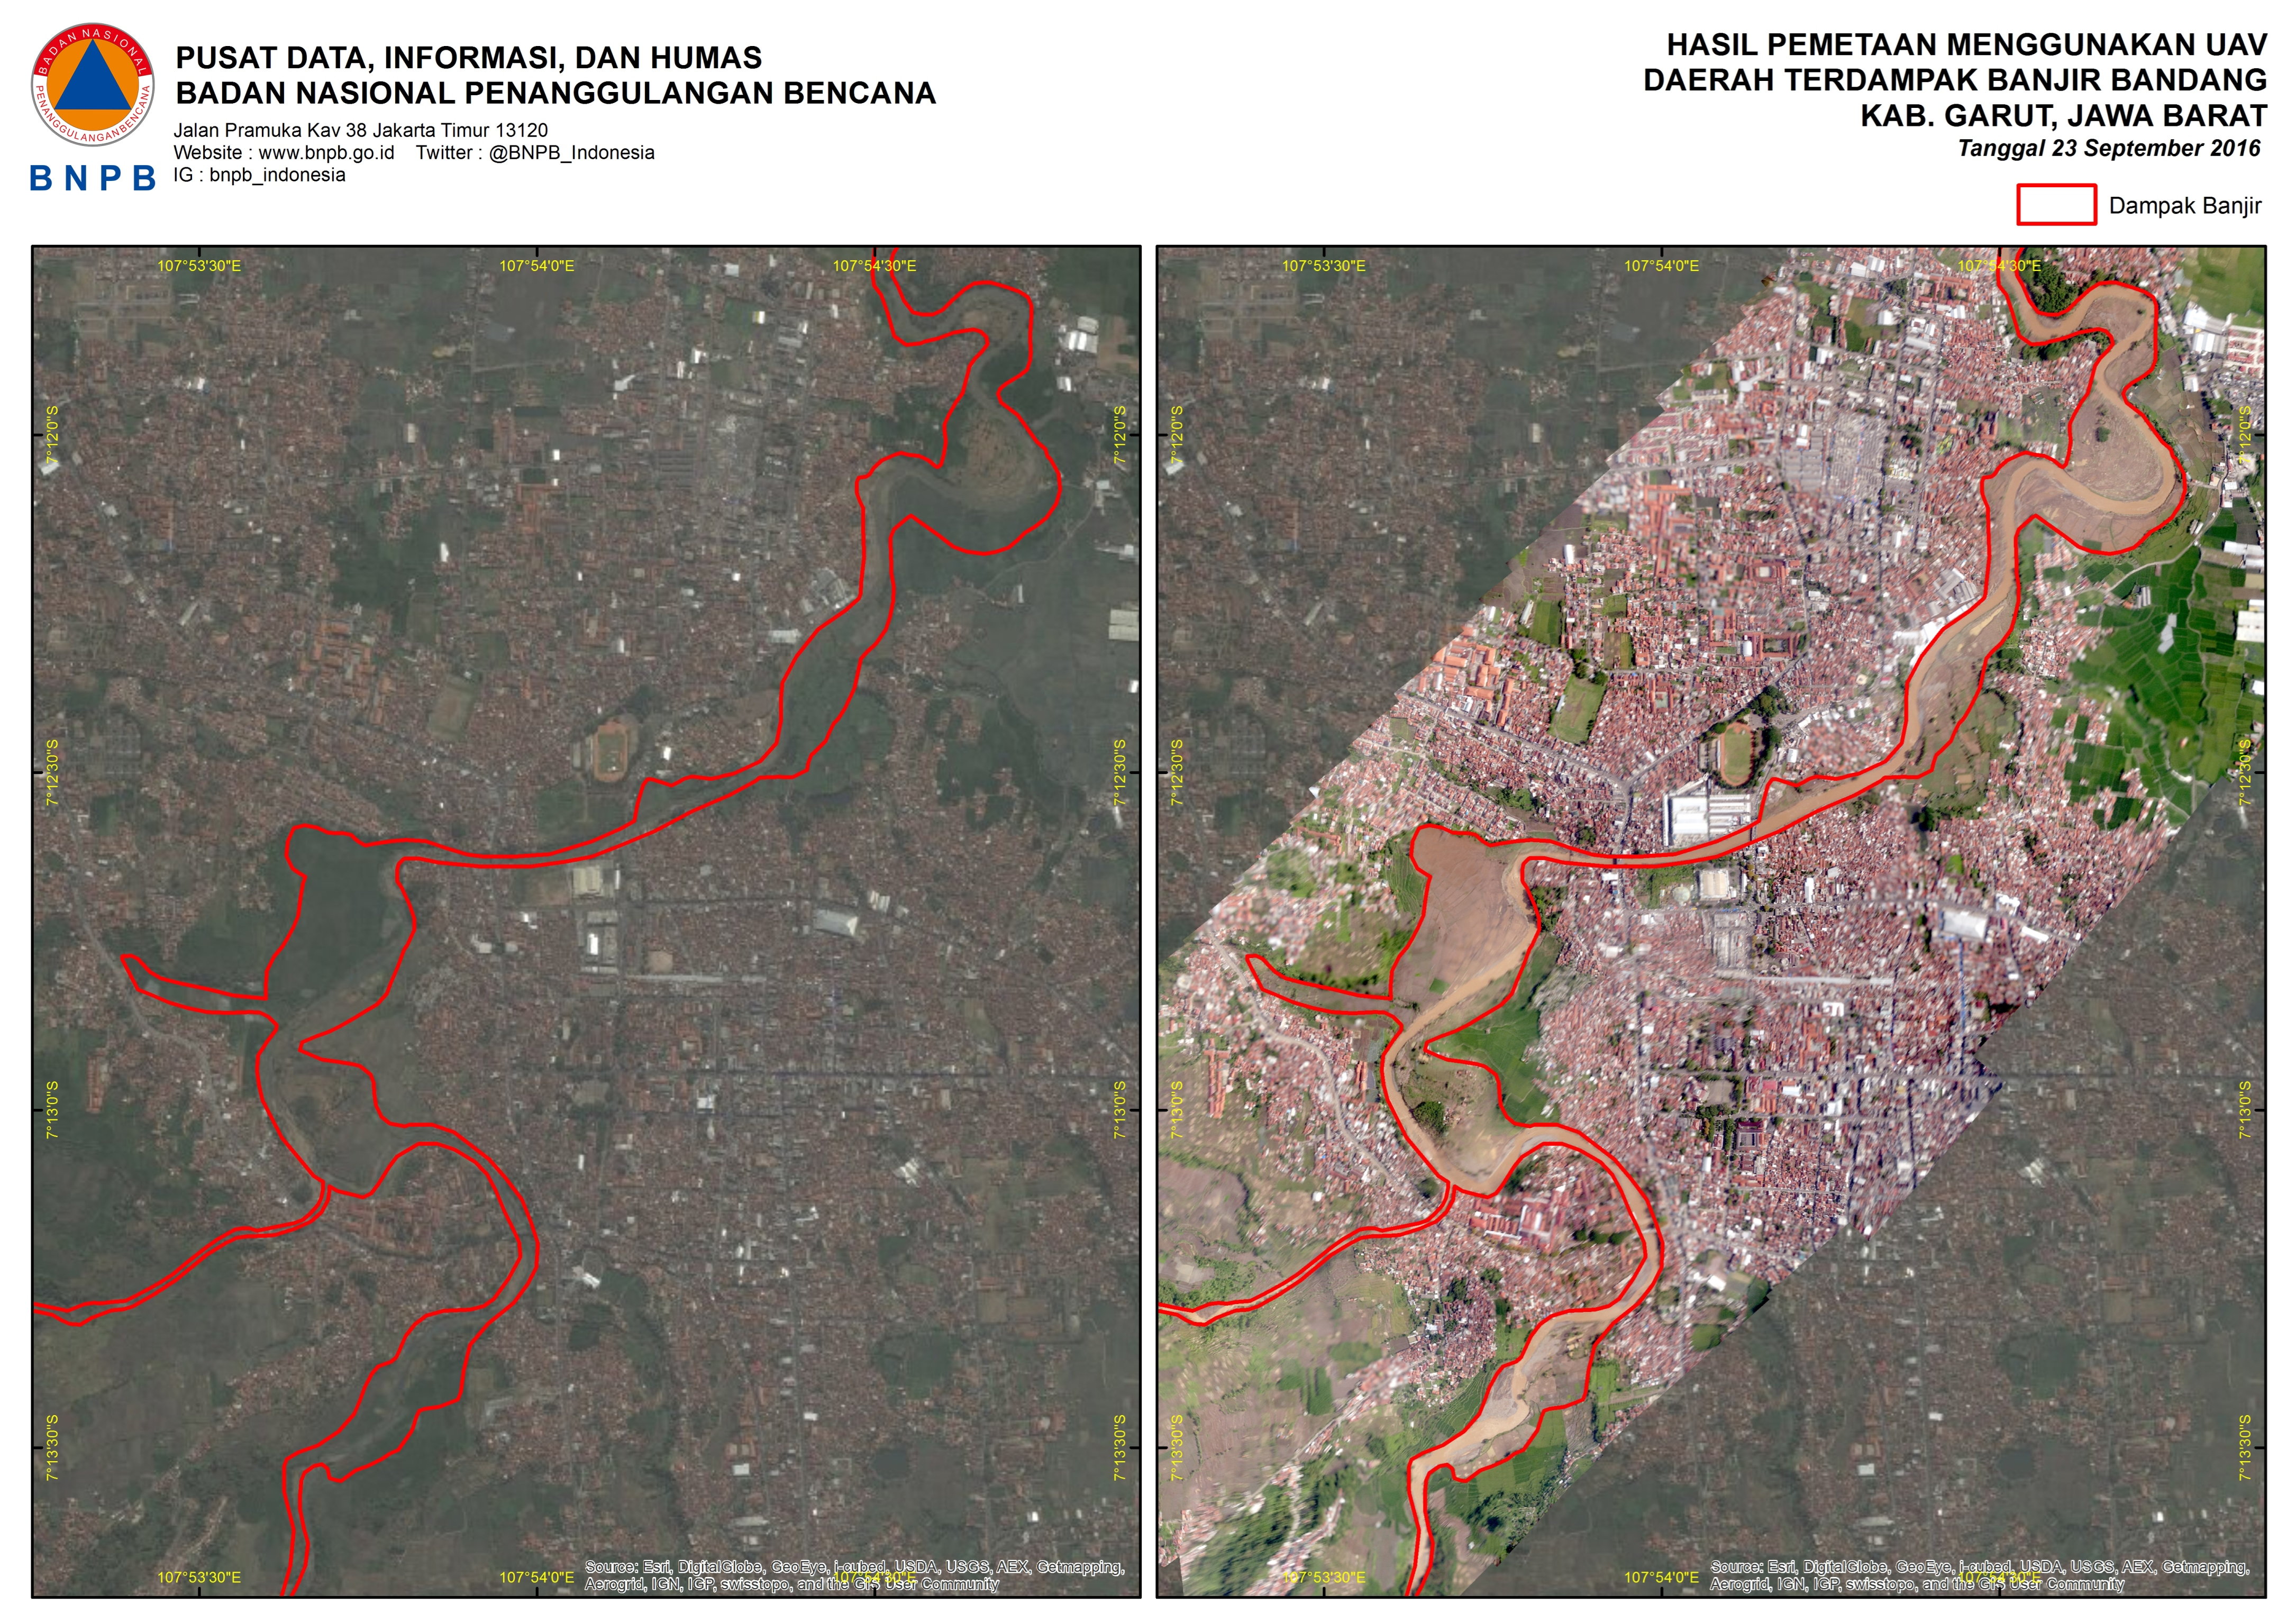 Maps Produced by Aerial Photograph Using UAV in Area Affected by Flash Flood in Garut District (Source: http://geospasial.bnpb.go.id/wp-content/uploads/2016/09/Banjir-garut-uav.jpg)